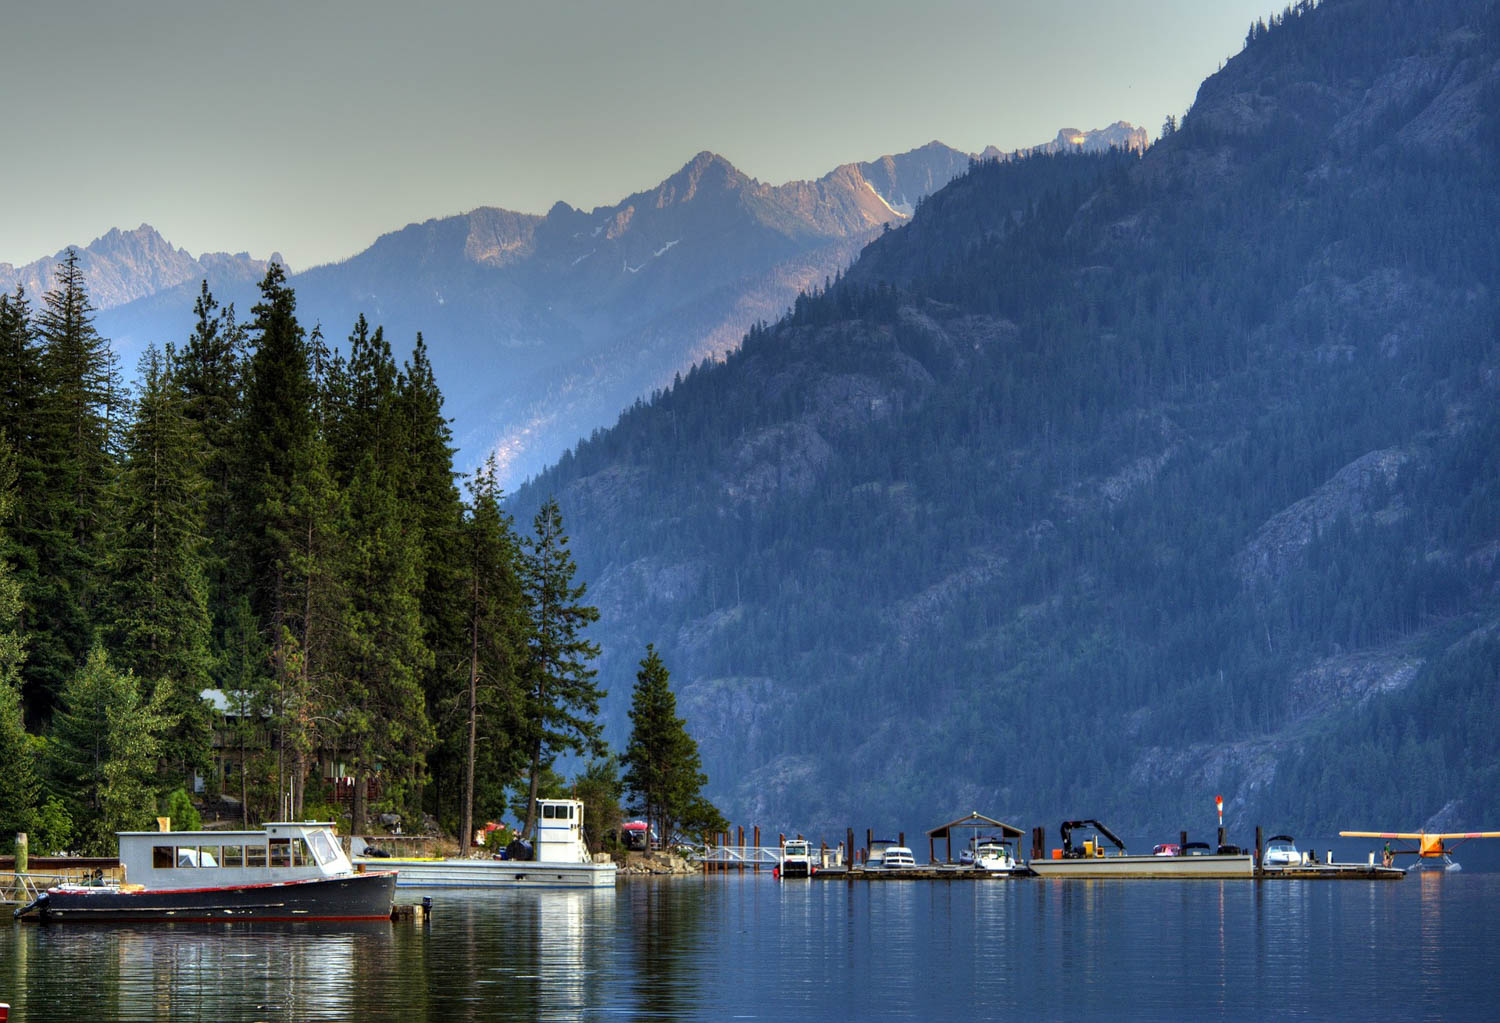 Stehekin, Lake Chelan National Recreation Area, Washington